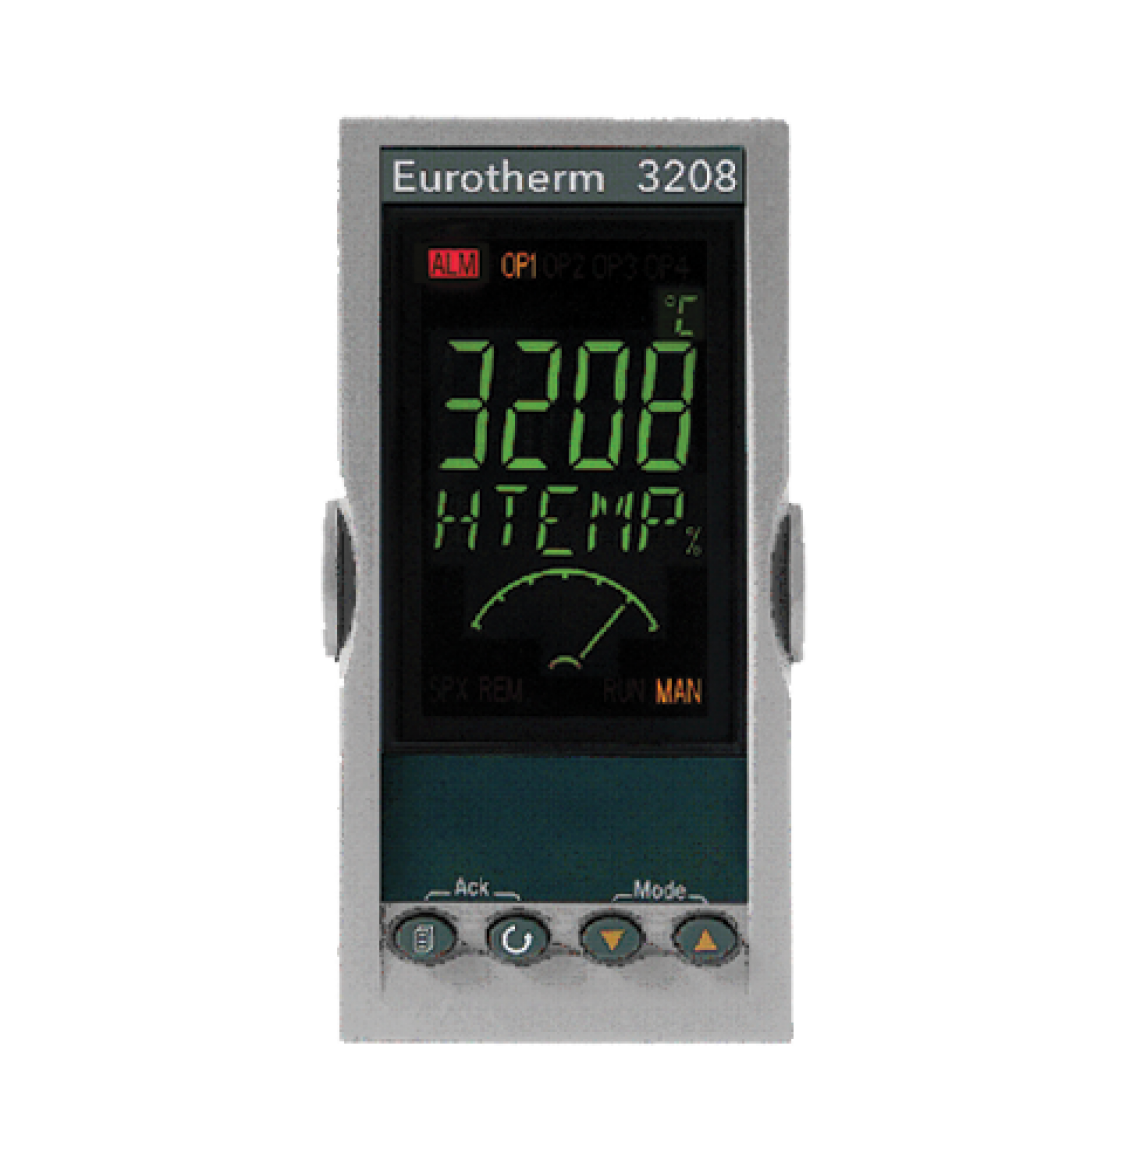 Eurotherm 3208 Single Loop Controller